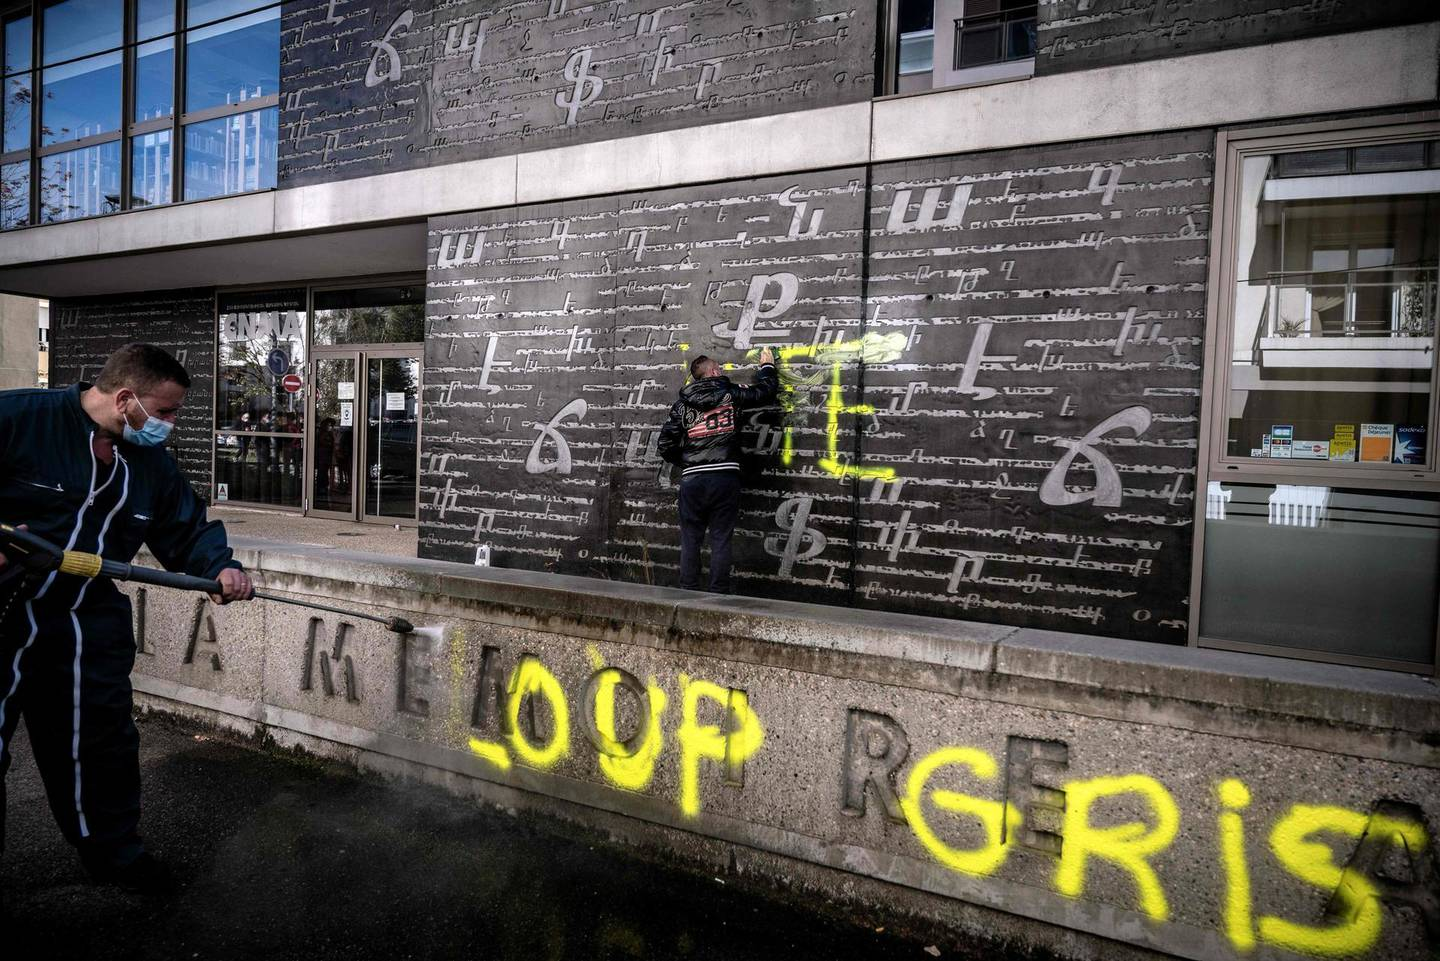 """Men clean an outside wall of the National Armenian Memorial Centre in Decines-Charpieu, near Lyon, on November 1, 2020 where pro-Turkish yellow letters graffiti tags have been painted overnight. Inscriptions read """"RTE"""" which can refers to Turkish Prime minister Recep Tayyip Erdogan and """"Grey Wolf"""" (Loup Gris), the name of an ultra-nationalist movement in Turkey. A nearby memorial for the Armenian genocide have also been tagged with the words """"Fuck Armenia"""". / AFP / JEFF PACHOUD"""